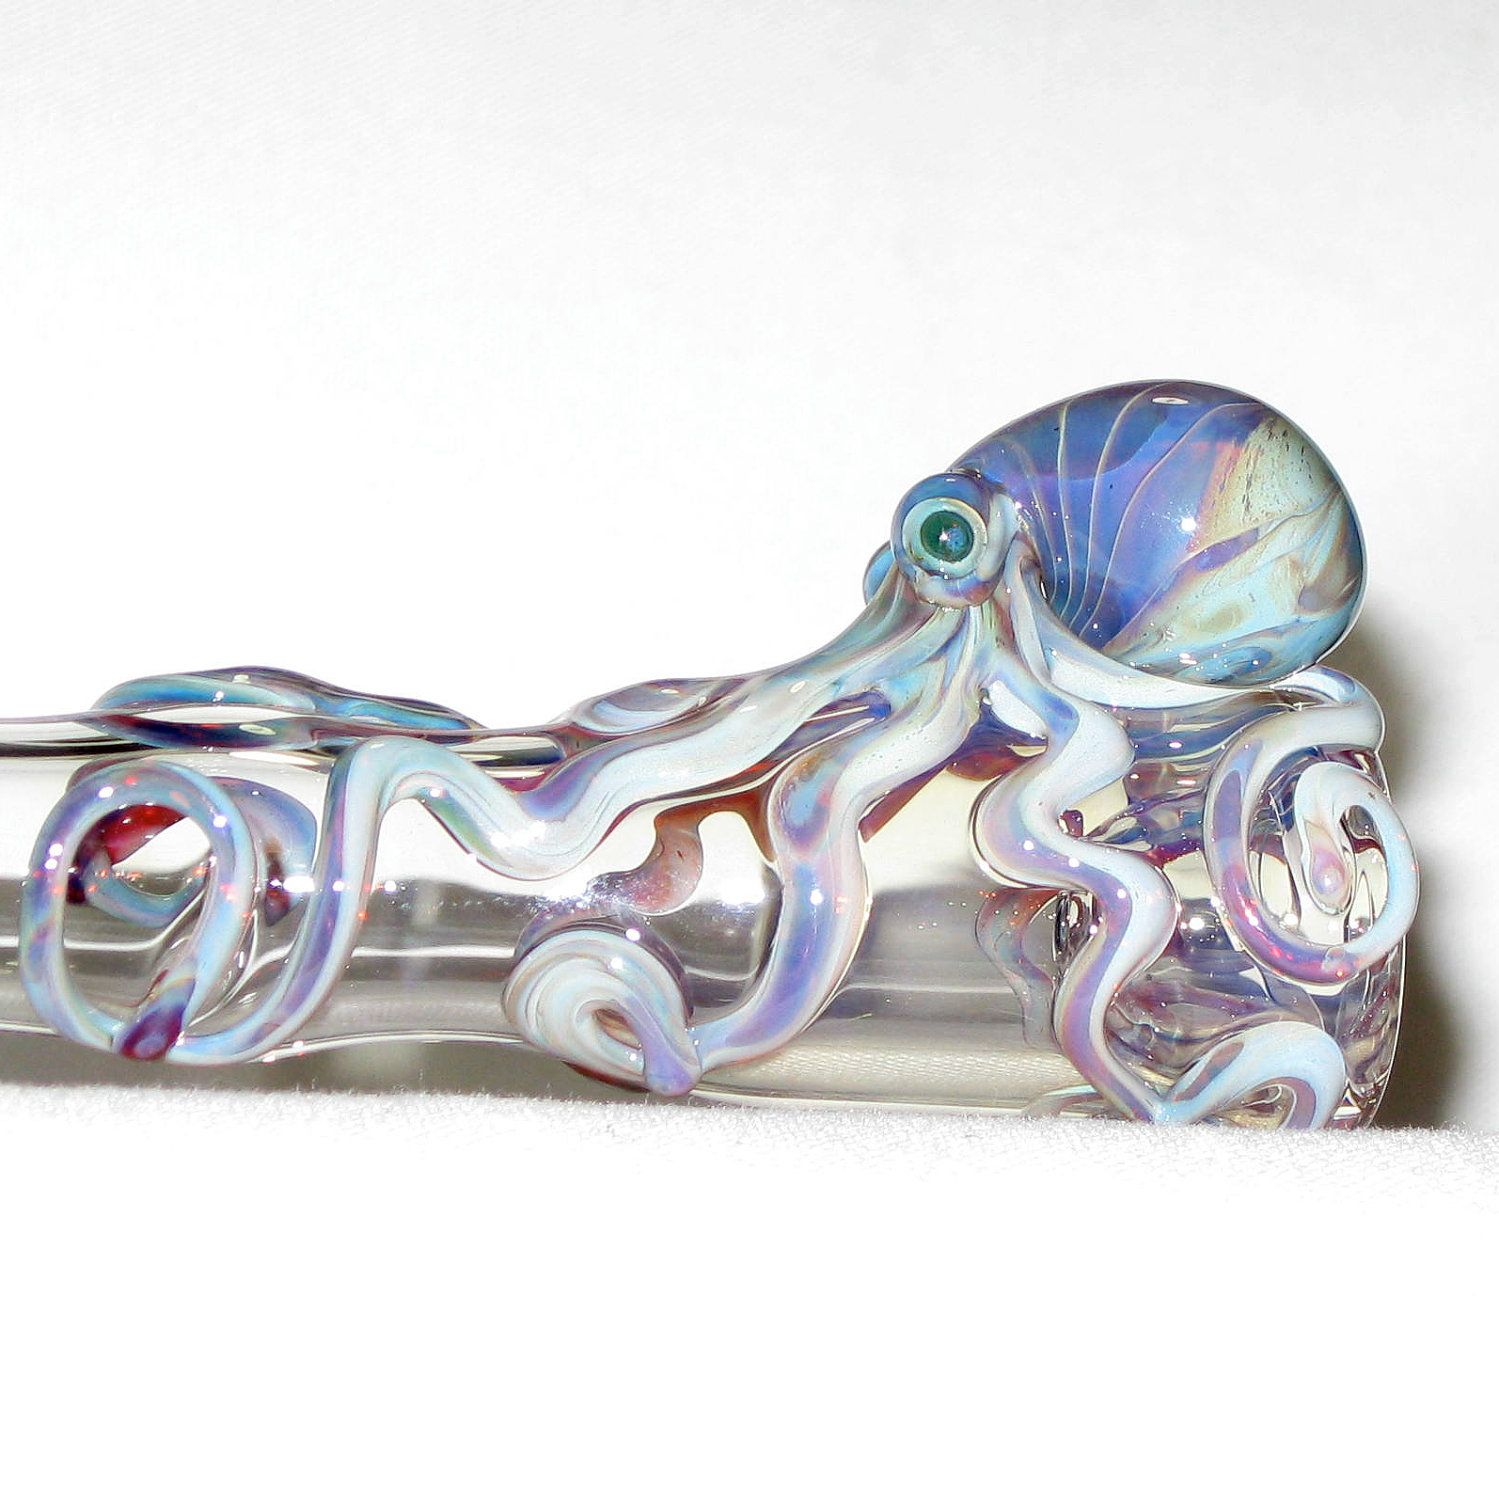 21 Glass ideas in 21   pipes and bongs, bongs, glass pipes